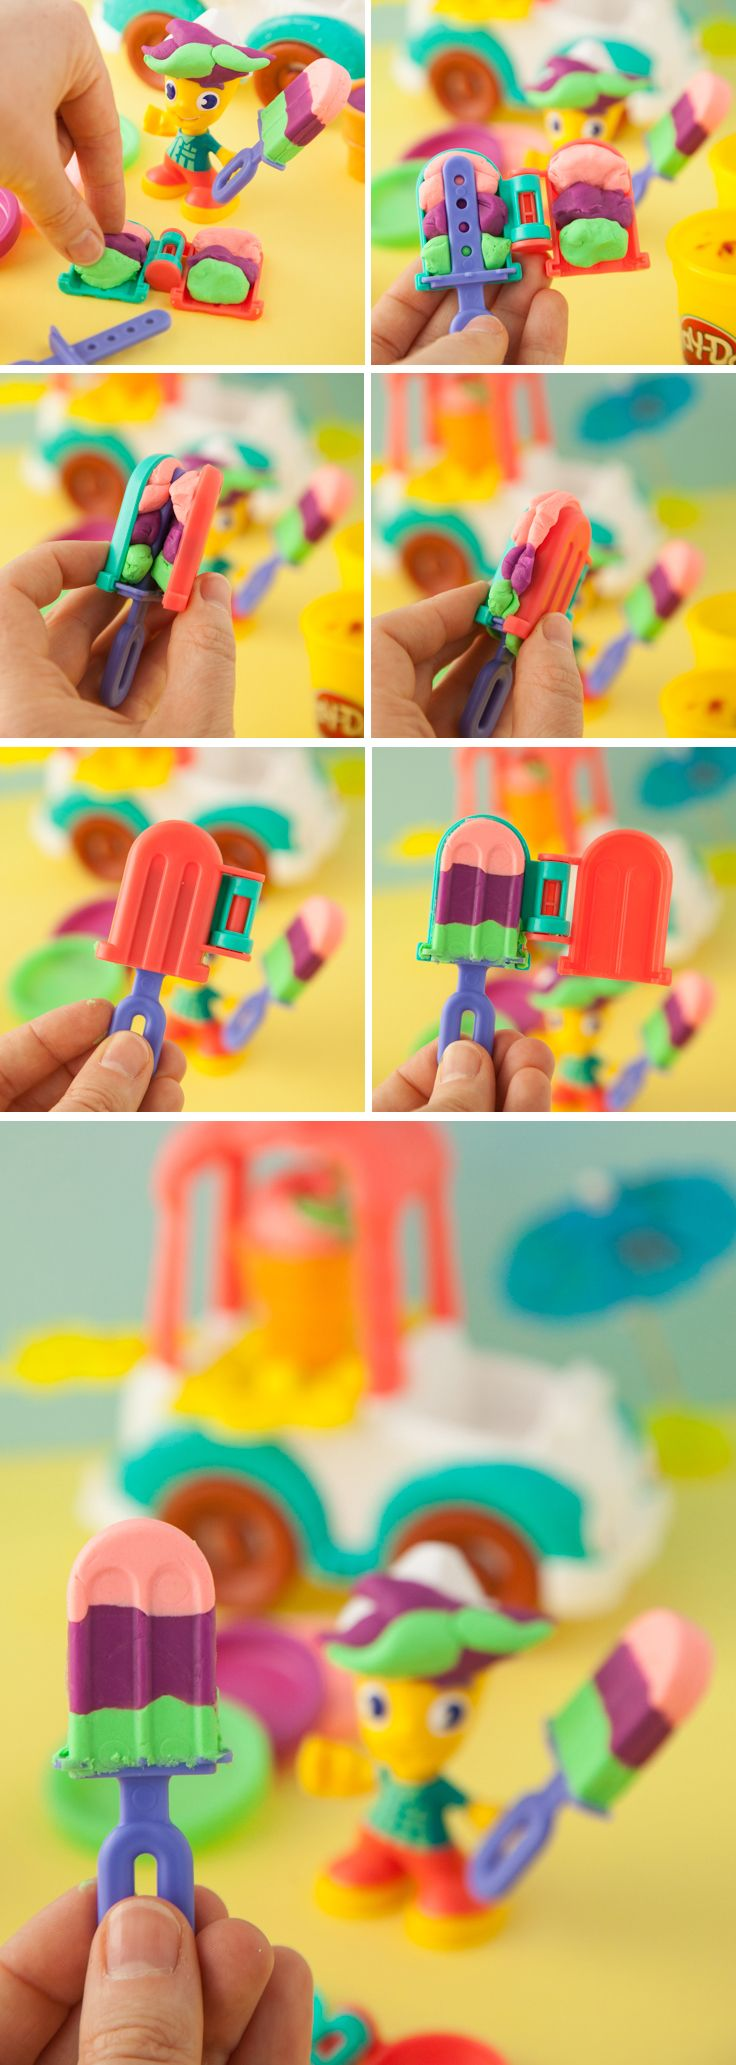 Your kids can press their own pretend colorful ice pops with this super fun Play-Doh Town Ice Cream Truck playset!